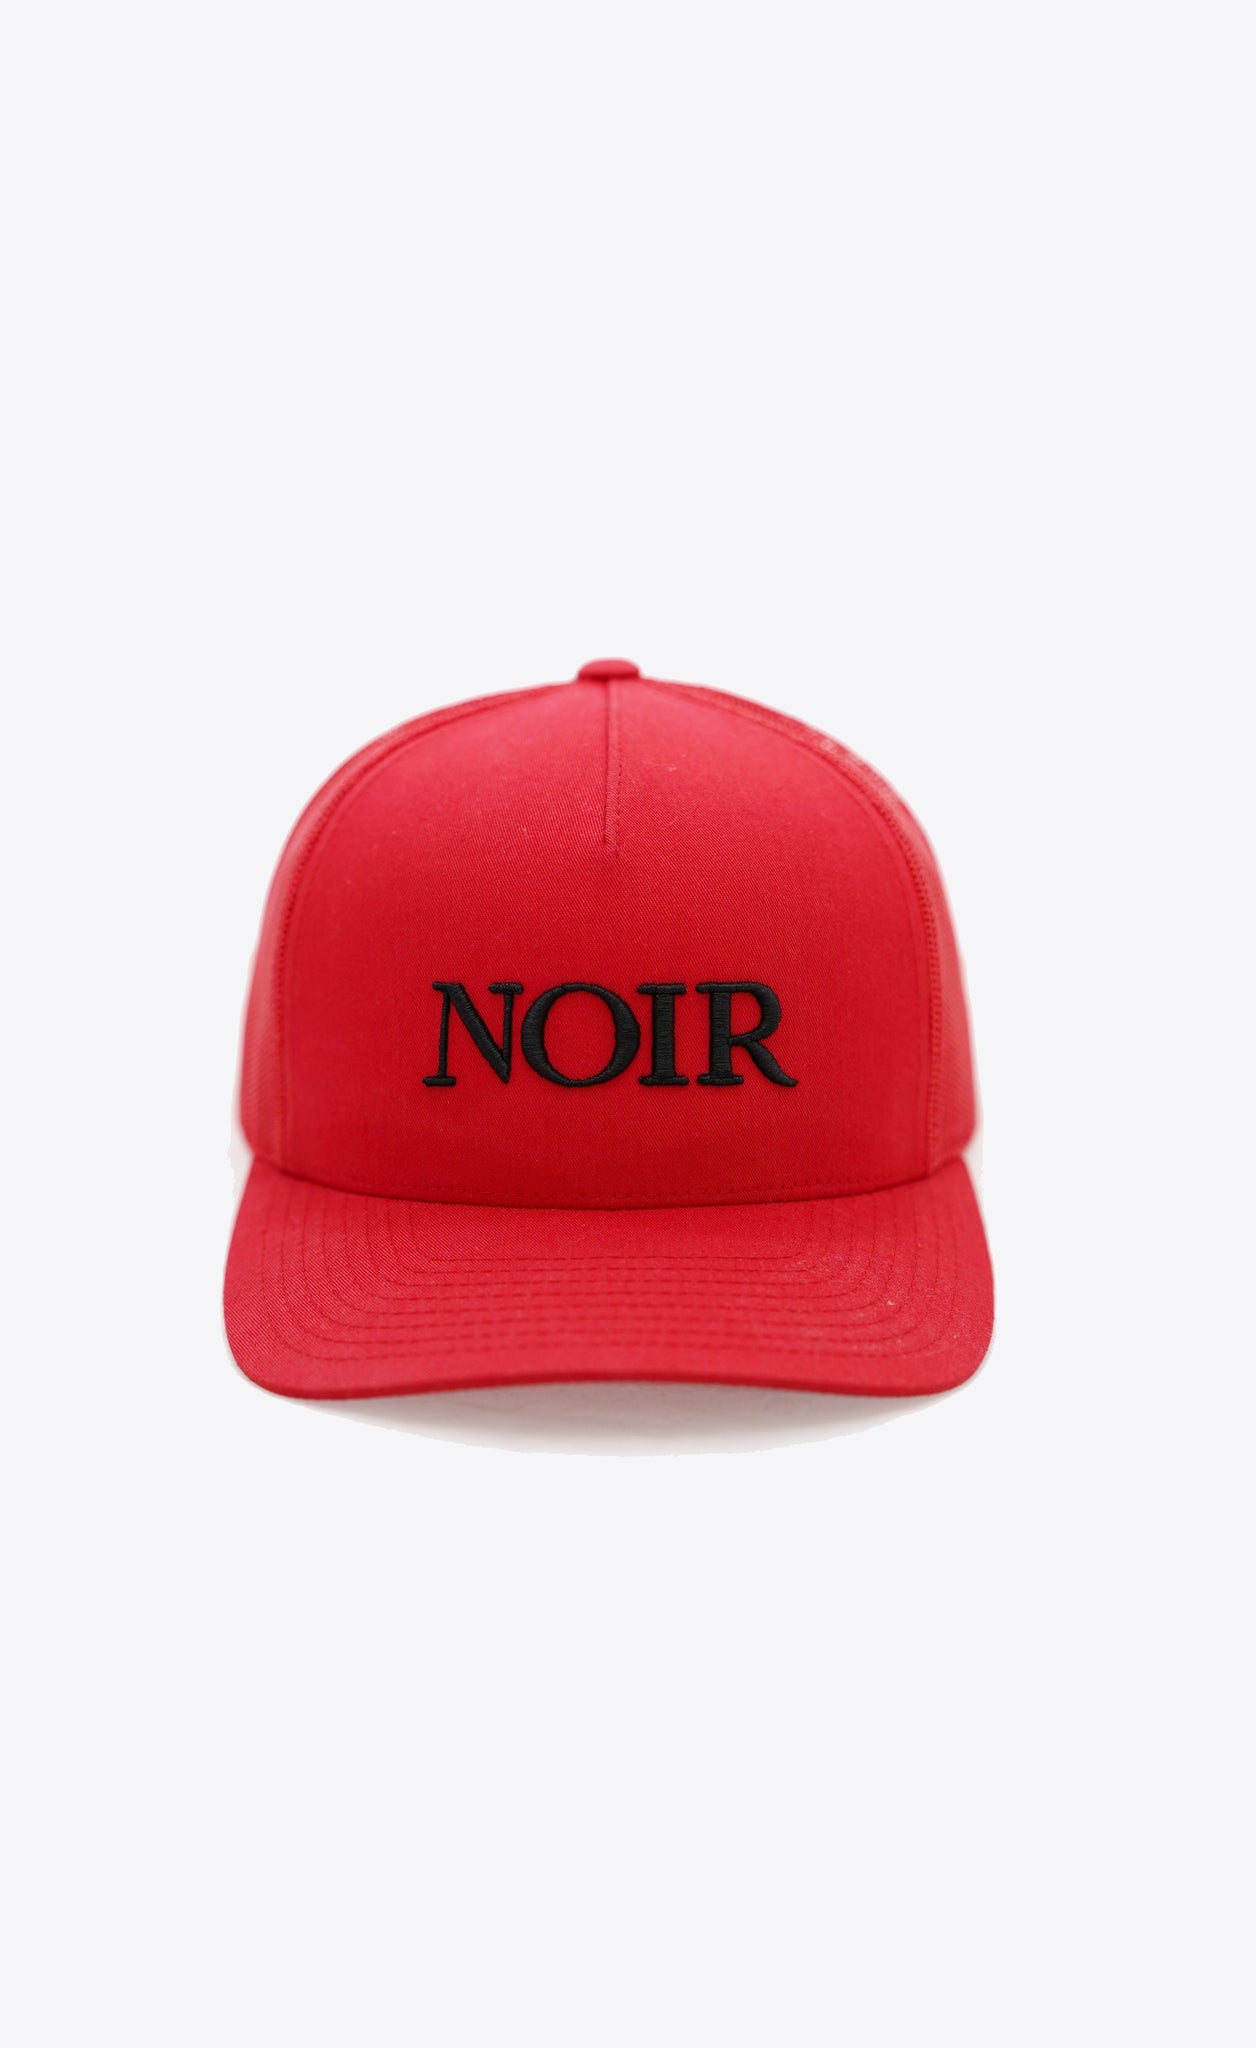 DEMEANOIR - NOIR TRUCKER HAT - THE SPOT BOUTIQUE